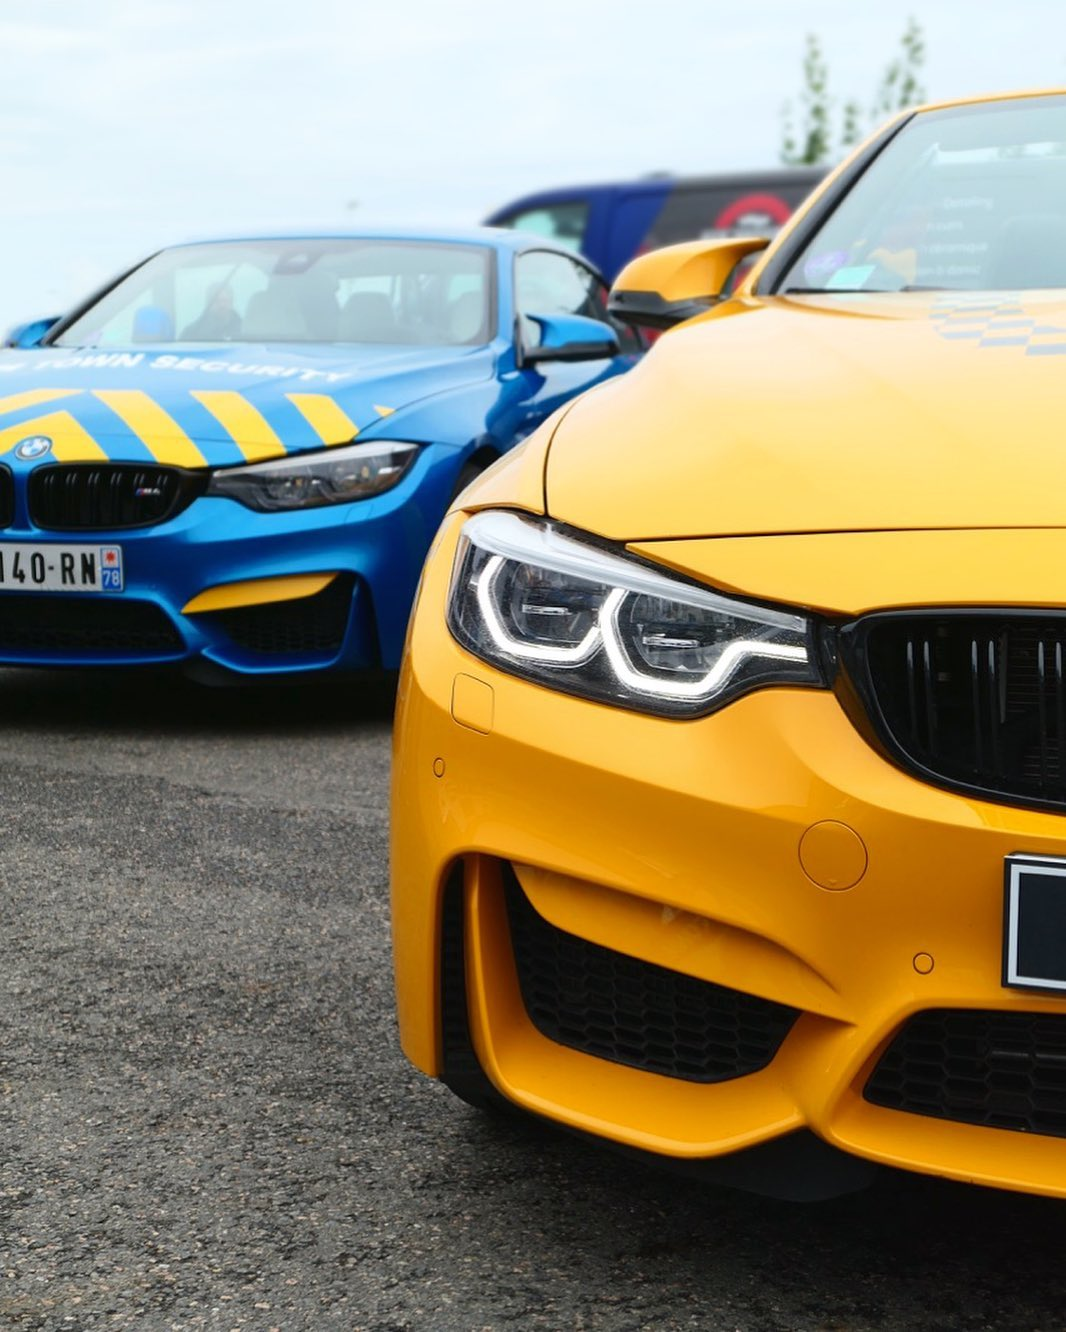 bmw m town M4 Cabriolet 30 Jarhe taxi and security road rug cars roadrugcars brothers car voiture auto automobile